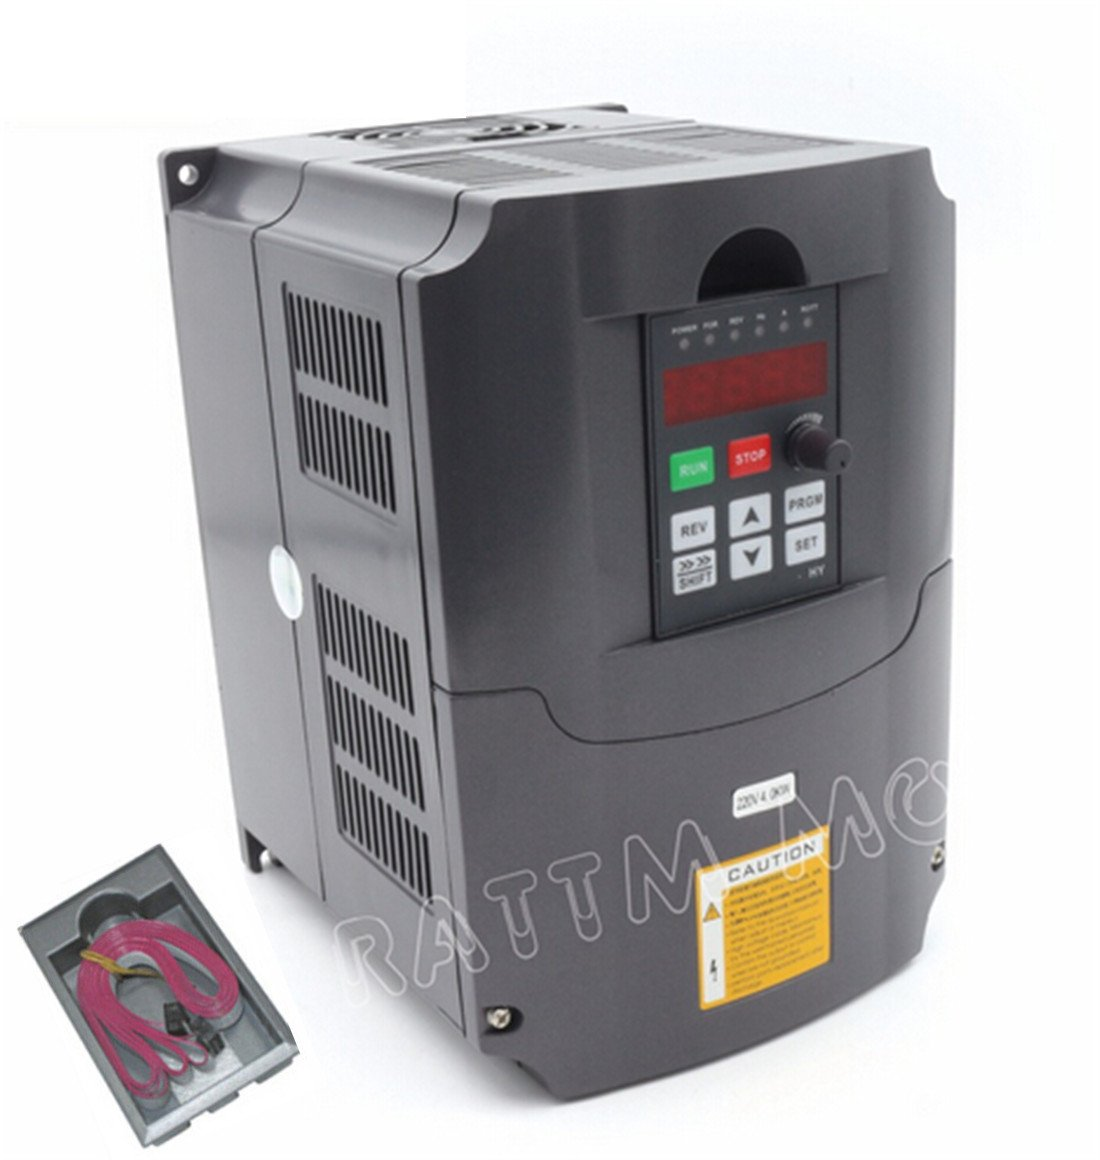 4KW 220V VFD Inverter Variable Frequency Drive Converter Driver Controller 5HP 3-Phase Output 18A VSD with 2m Extension Cable For Spindle Motor Drive Control/CNC Router Engraving Milling Machine by CNCTOPBAOS